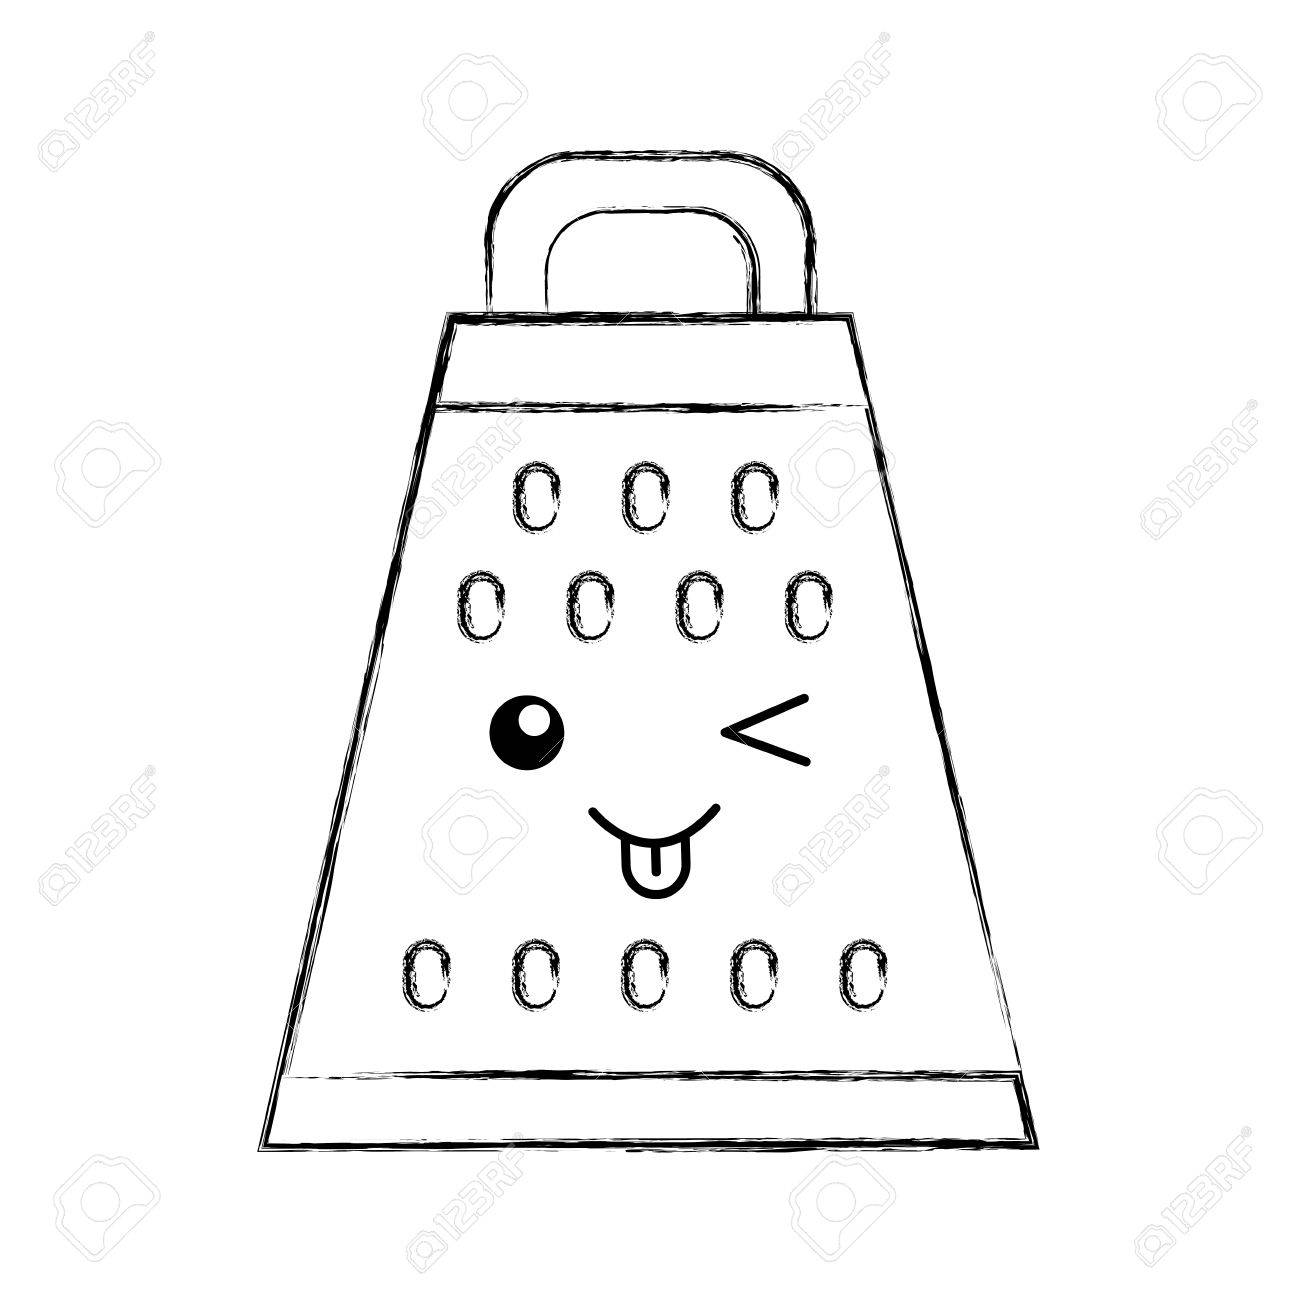 Kitchen Grater Character Vector Illustration Design Stock Vector   81086194